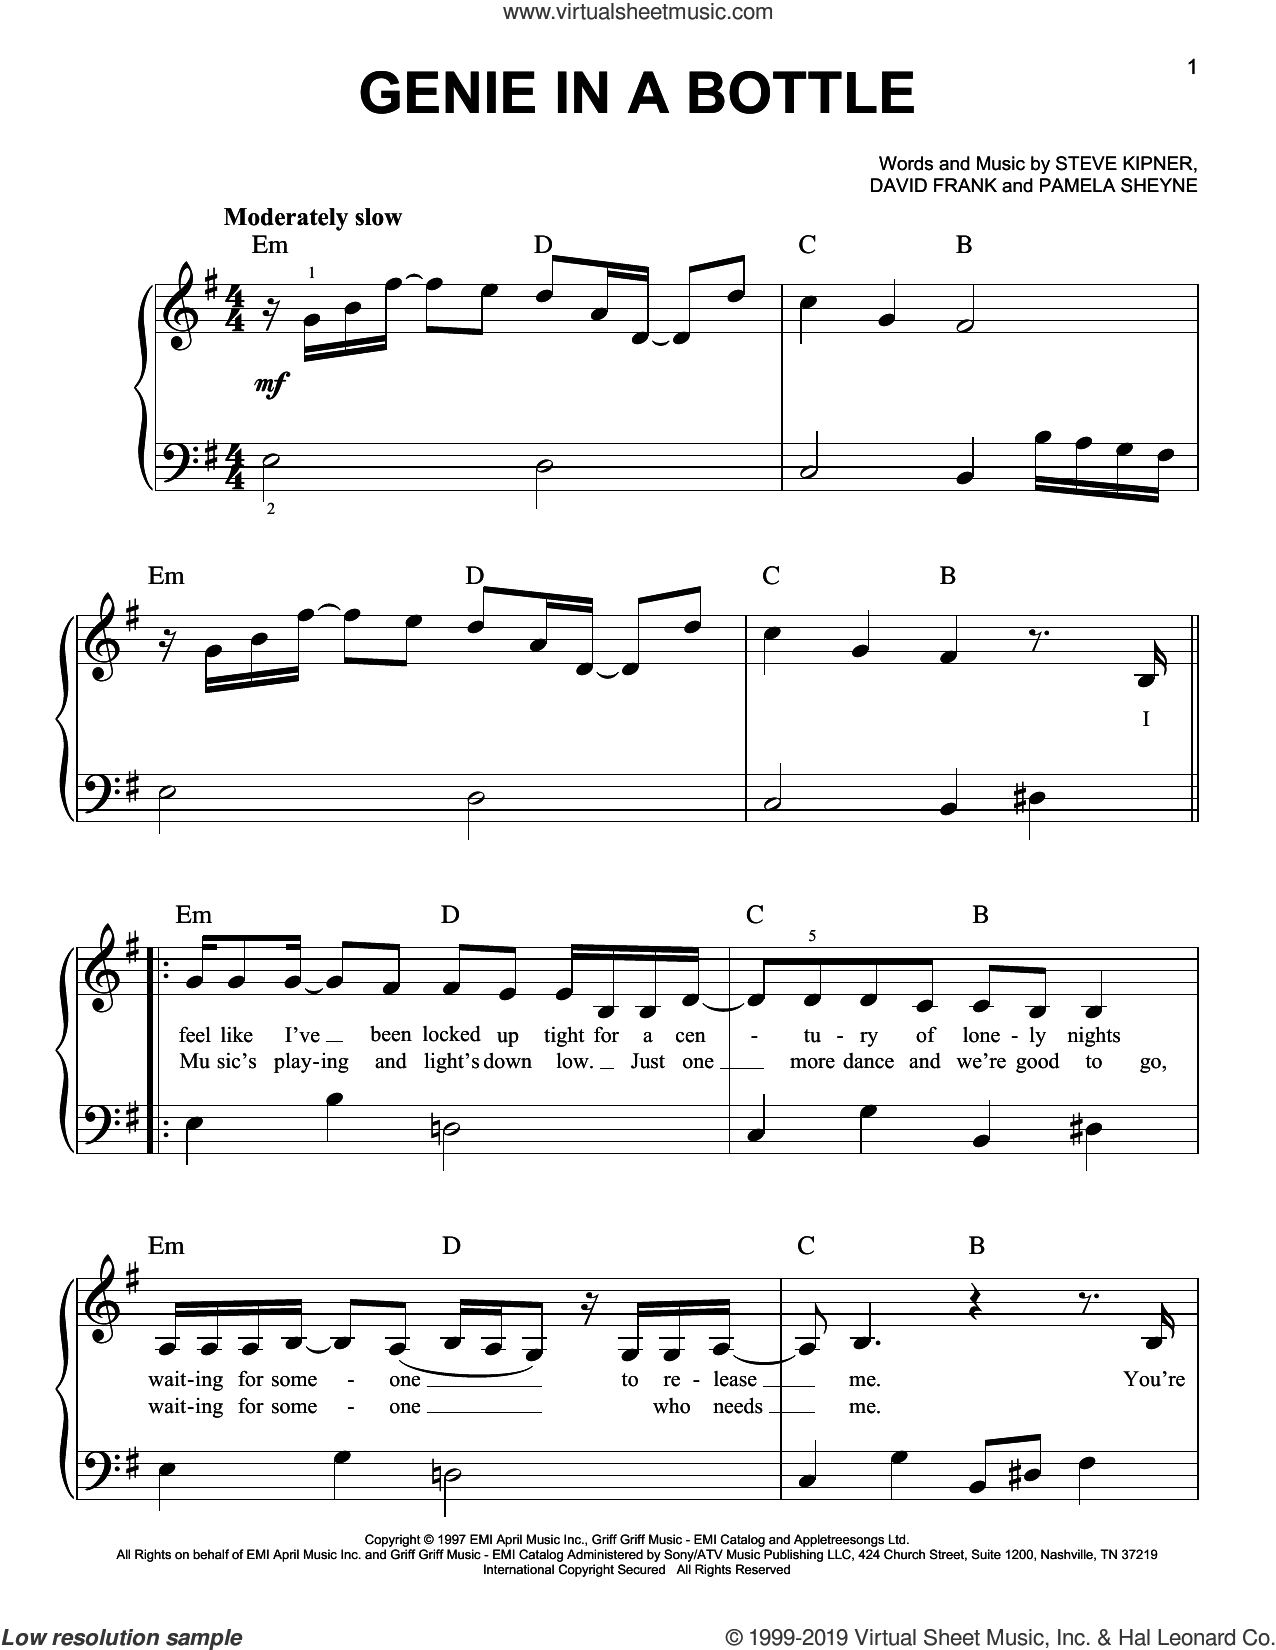 Genie In A Bottle sheet music for piano solo by Christina Aguilera, David Frank, Pam Sheyne and Steve Kipner, easy skill level